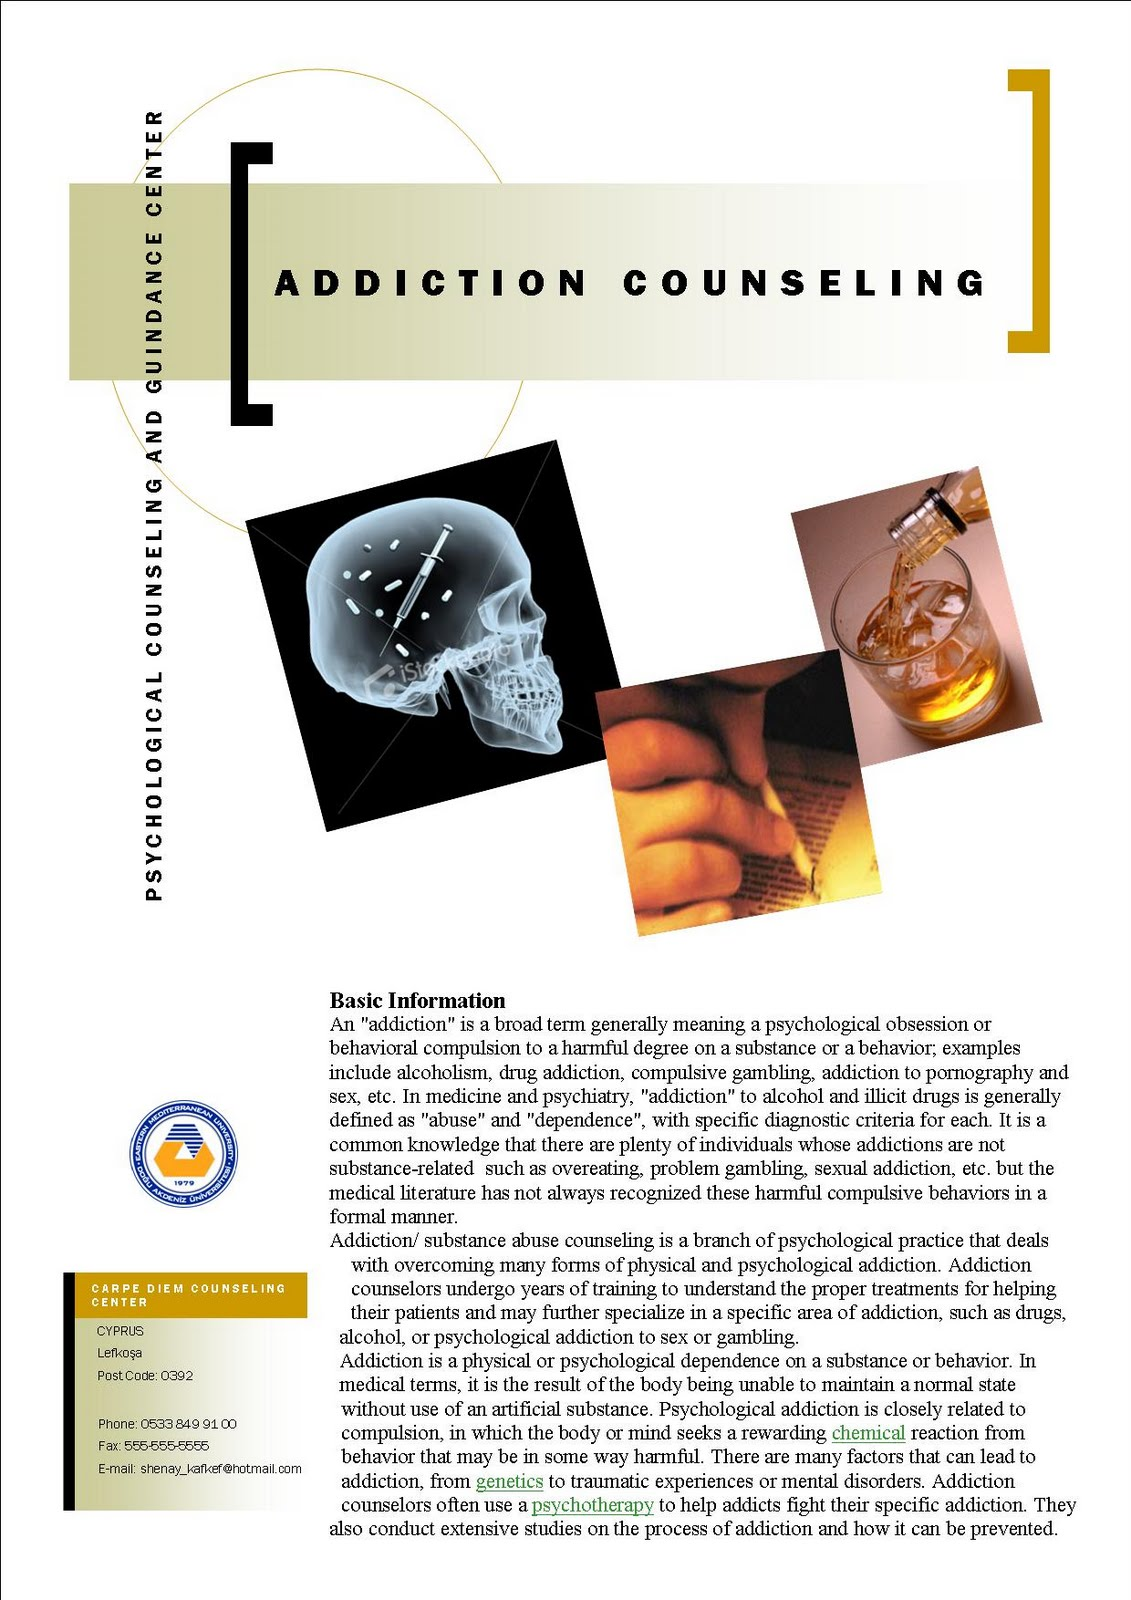 Substance Abuse and Addiction Counseling most hired college majors